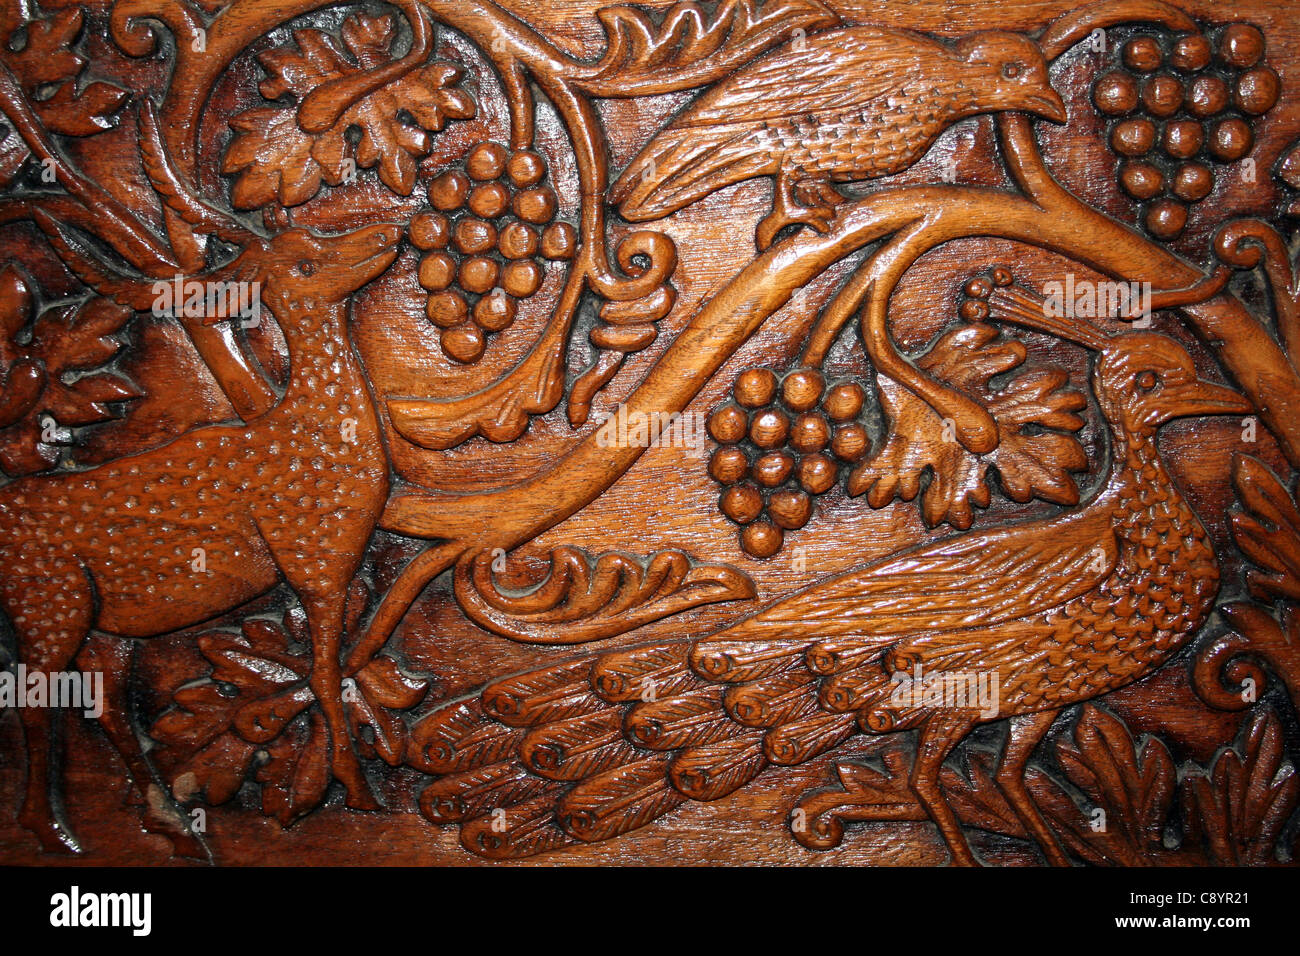 Carved Wood Panel Depicting Deer, Peacock And Bird - Stock Image